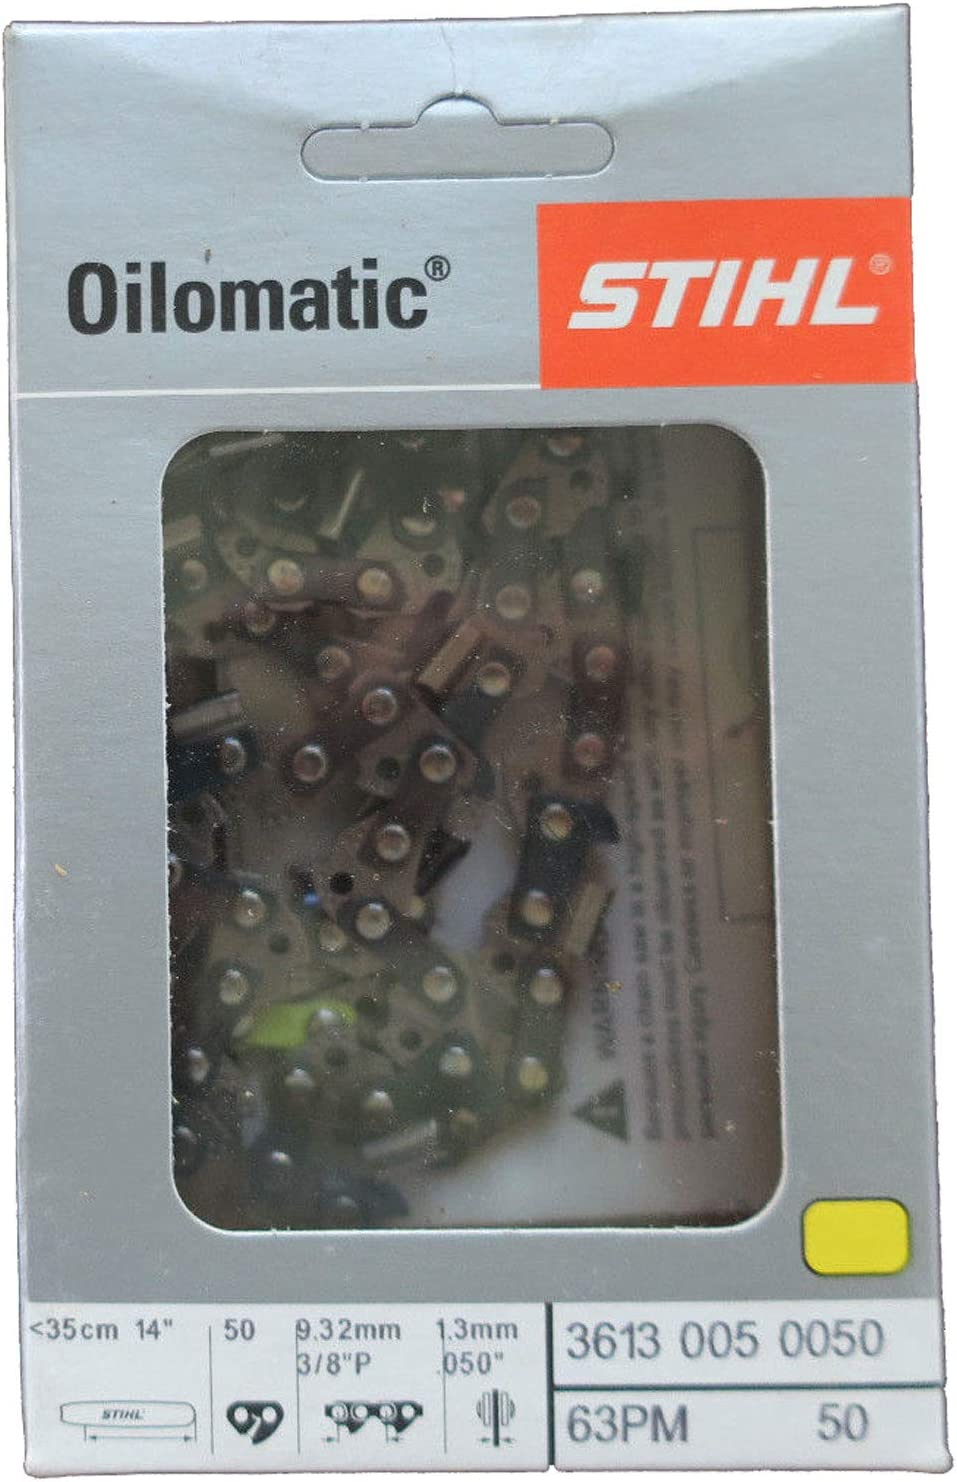 STIHL 3//8 Pitch PS RACING CHAIN 14 inch bar 50 drivers full chisel .050 gauge